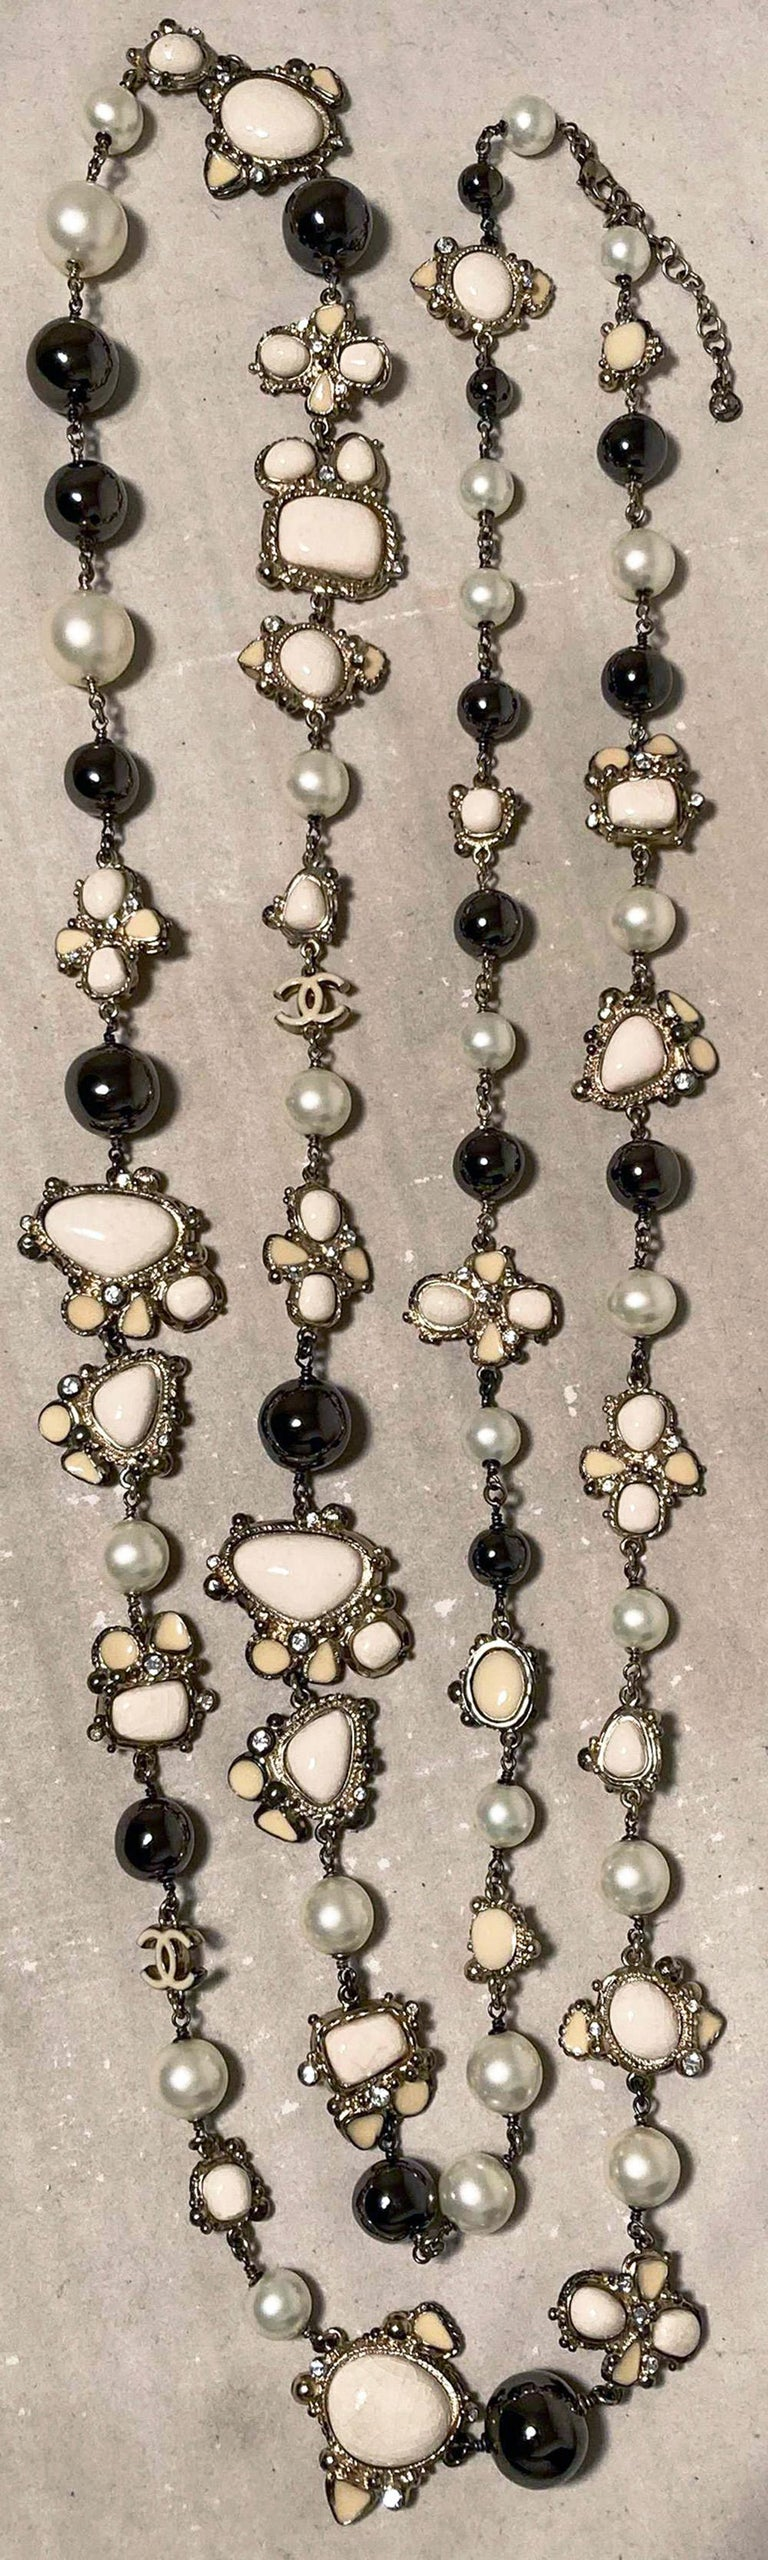 Chanel Vintage Enamel and Pearl Necklace  For Sale 2